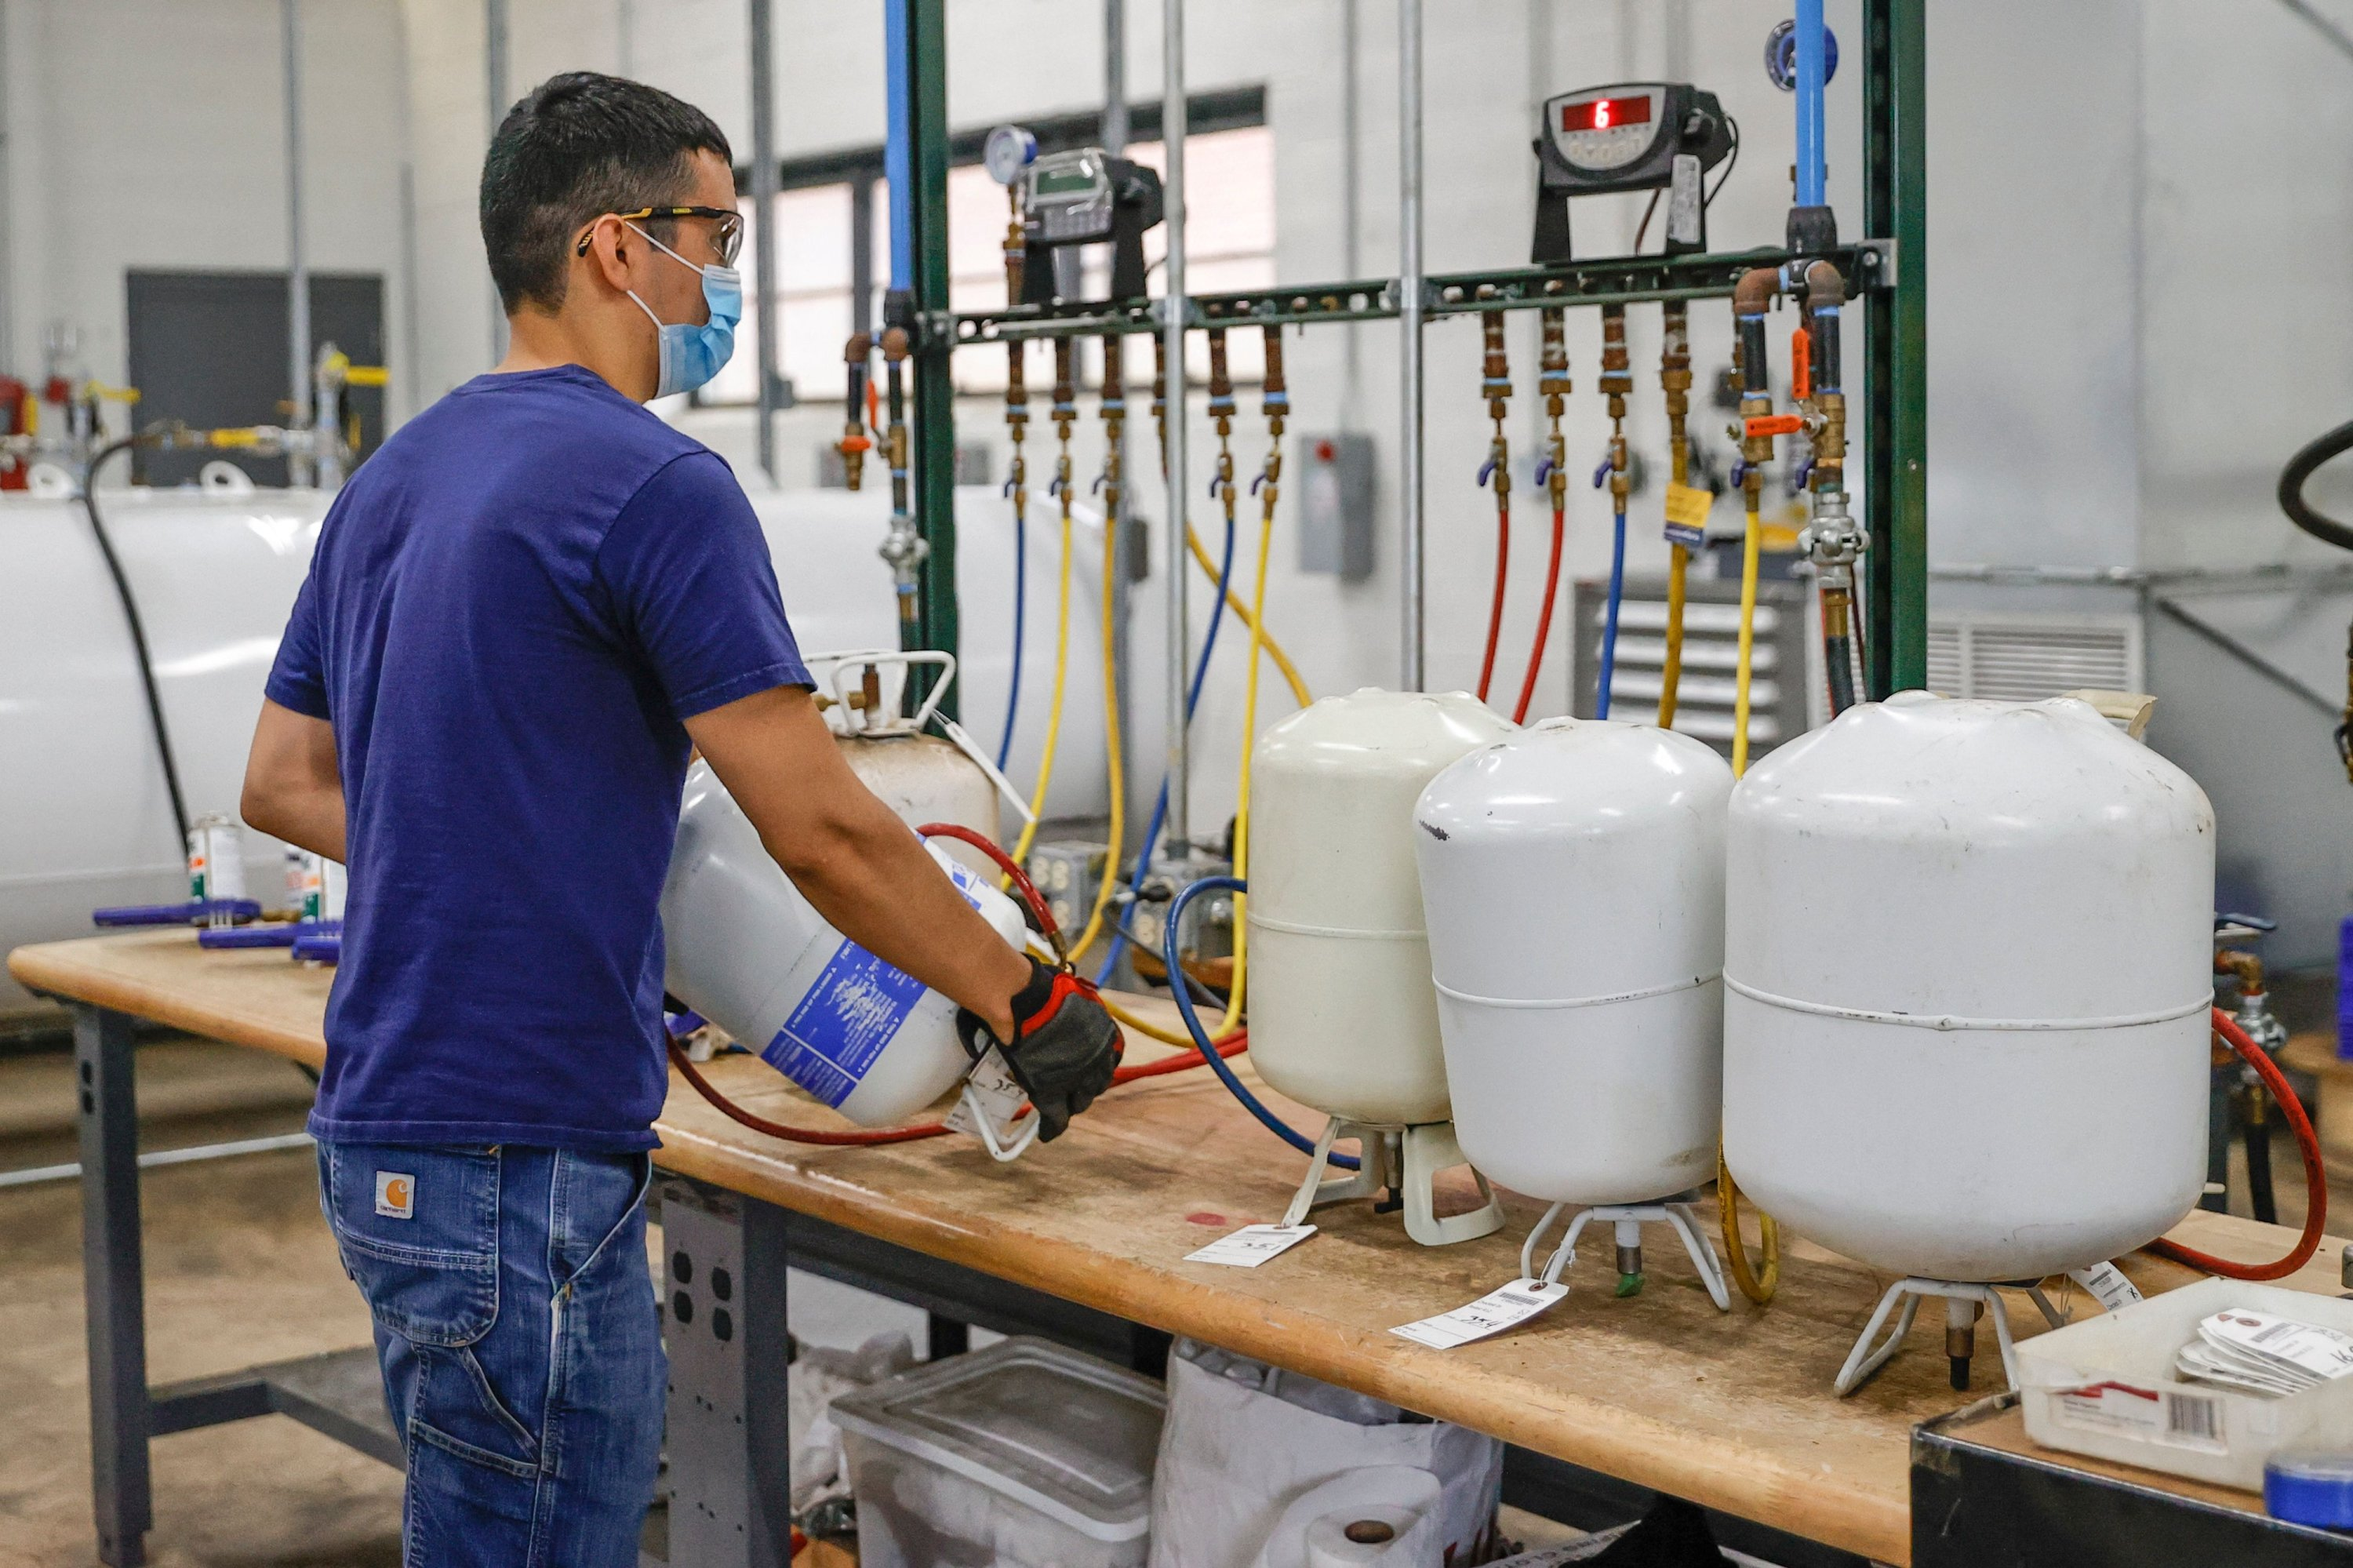 Employee Victor Molina empties used refrigerants at the Tradewater Refrigerant Solutions Warehouse in Elk Grove Village, Illinois, U.S., Aug. 11, 2021. (AFP Photo)